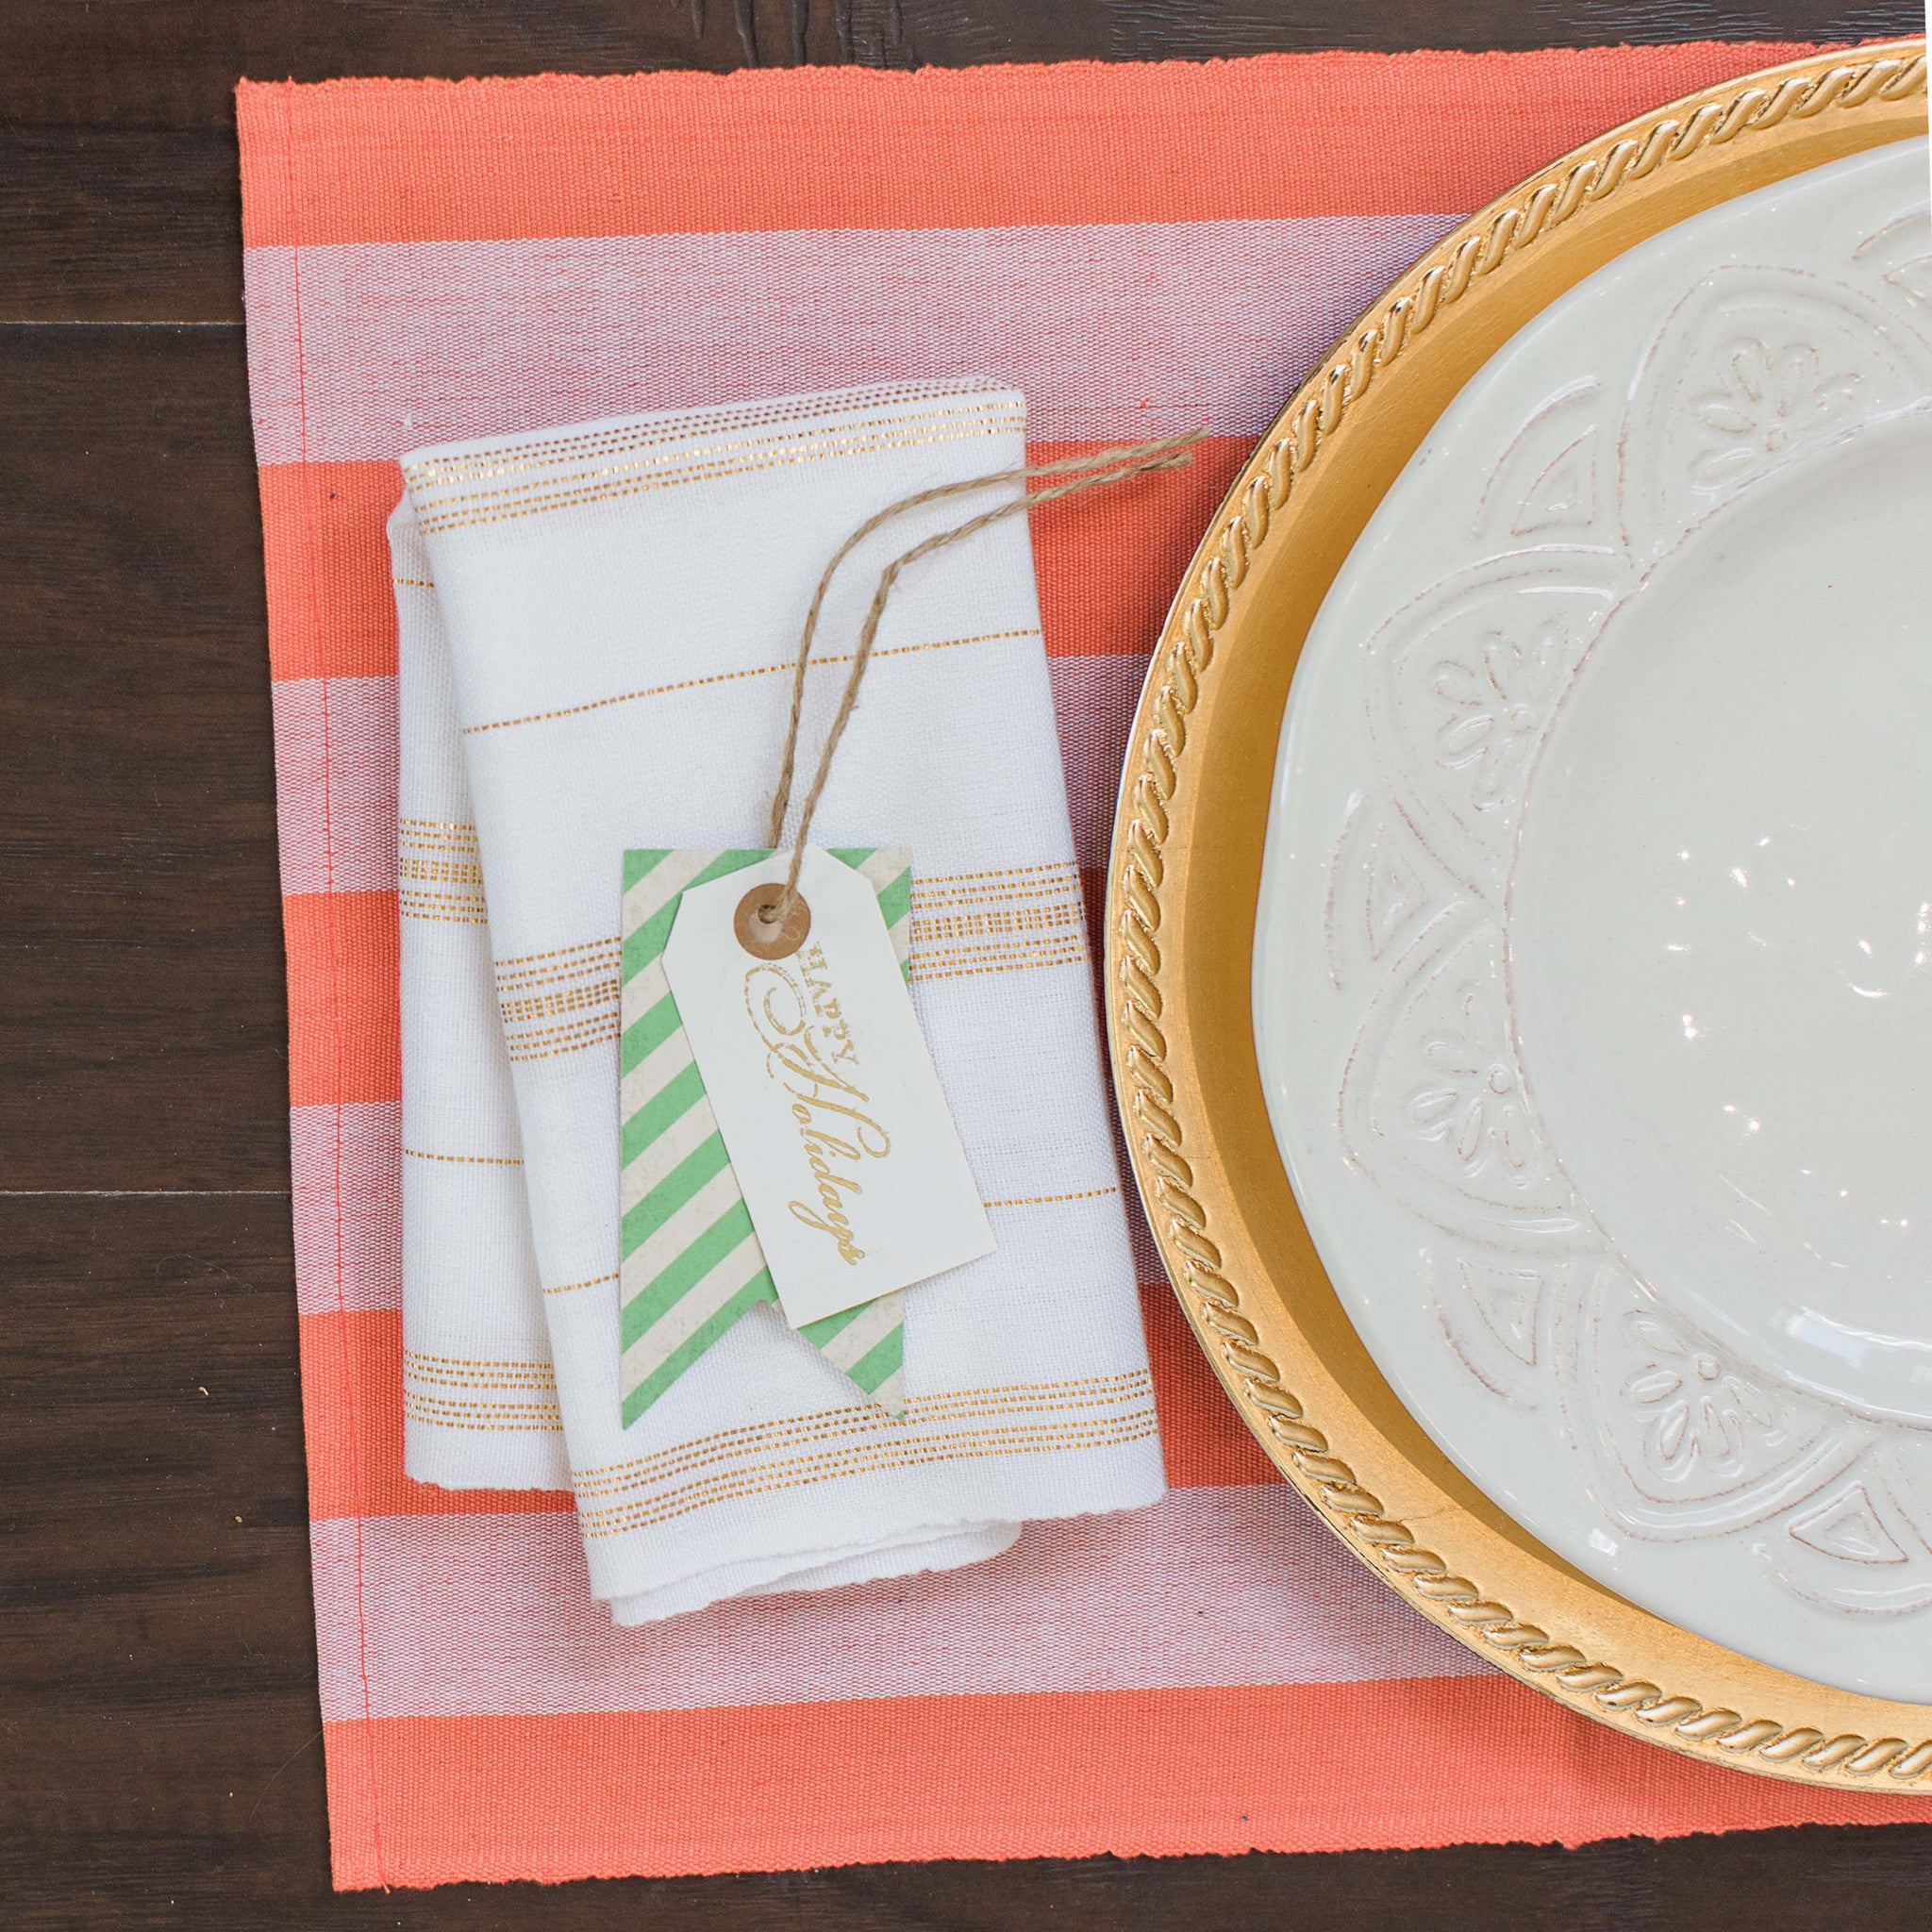 Coral and White Fair Trade Placemats set 4 & Coral and White Fair Trade Placemats set 4 - Education And More